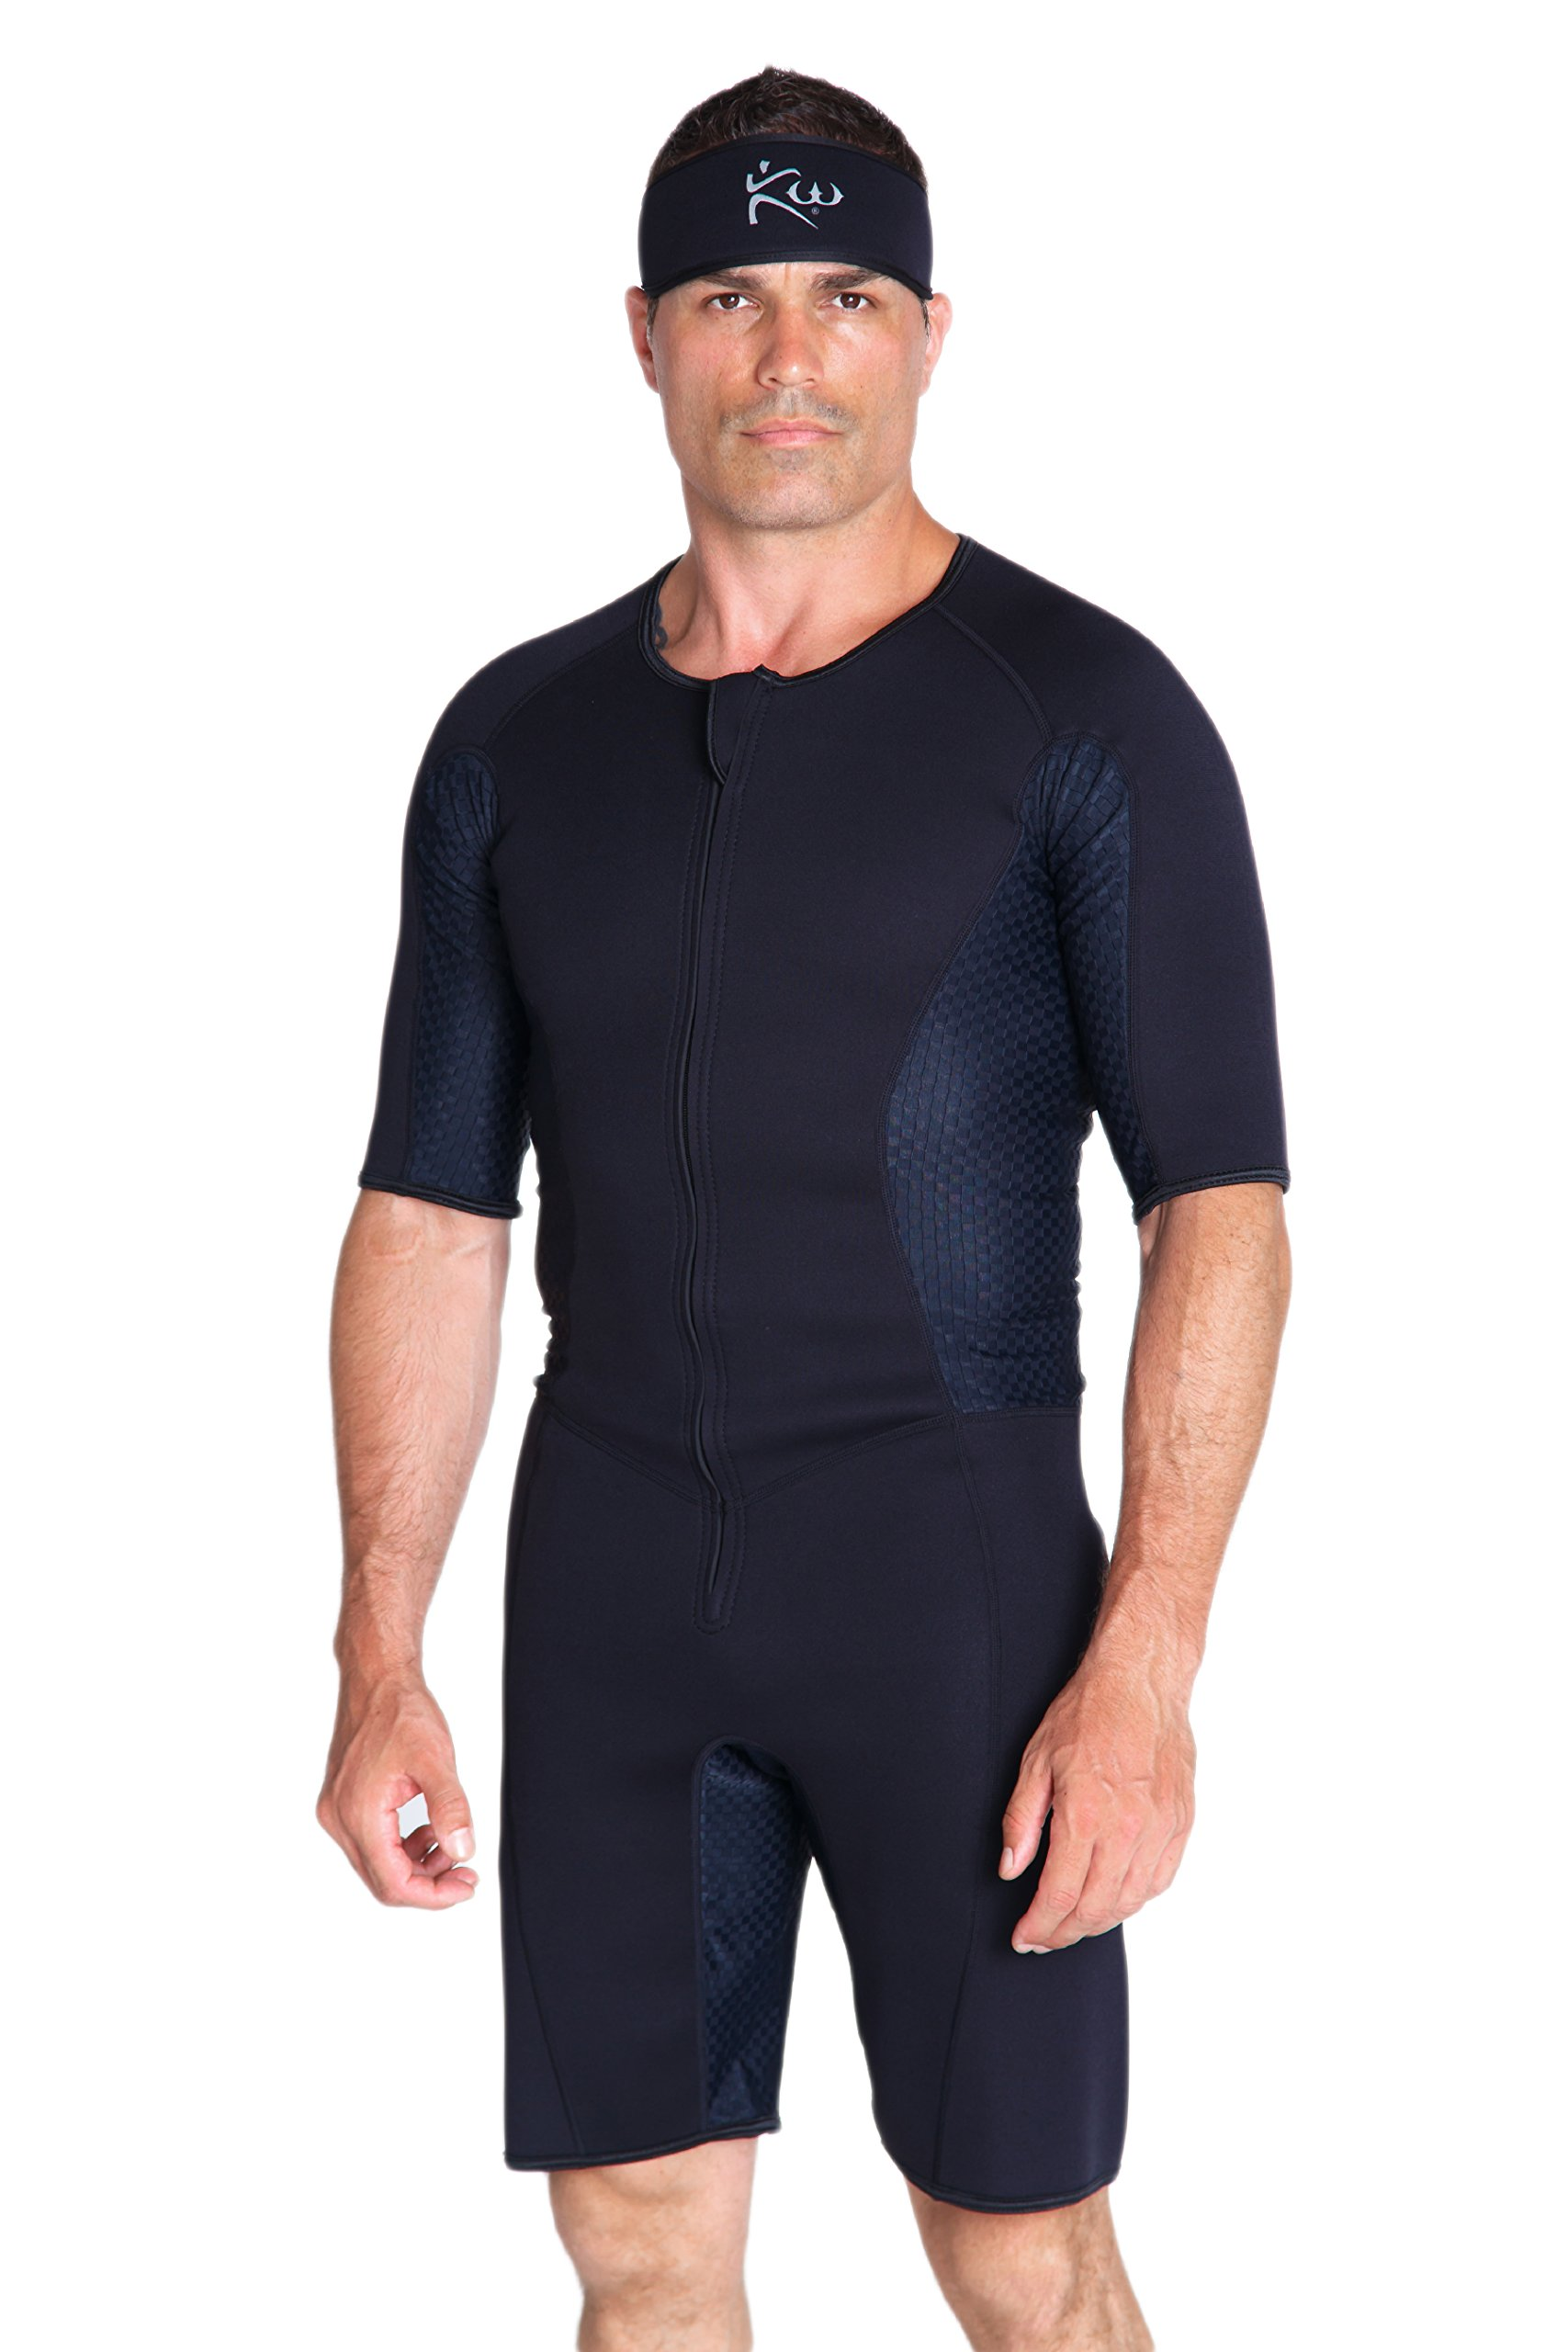 Kutting Weight Neoprene Weight Loss Men's & Women's Sauna Suit (Black, 3XL) by Kutting Weight (Image #1)